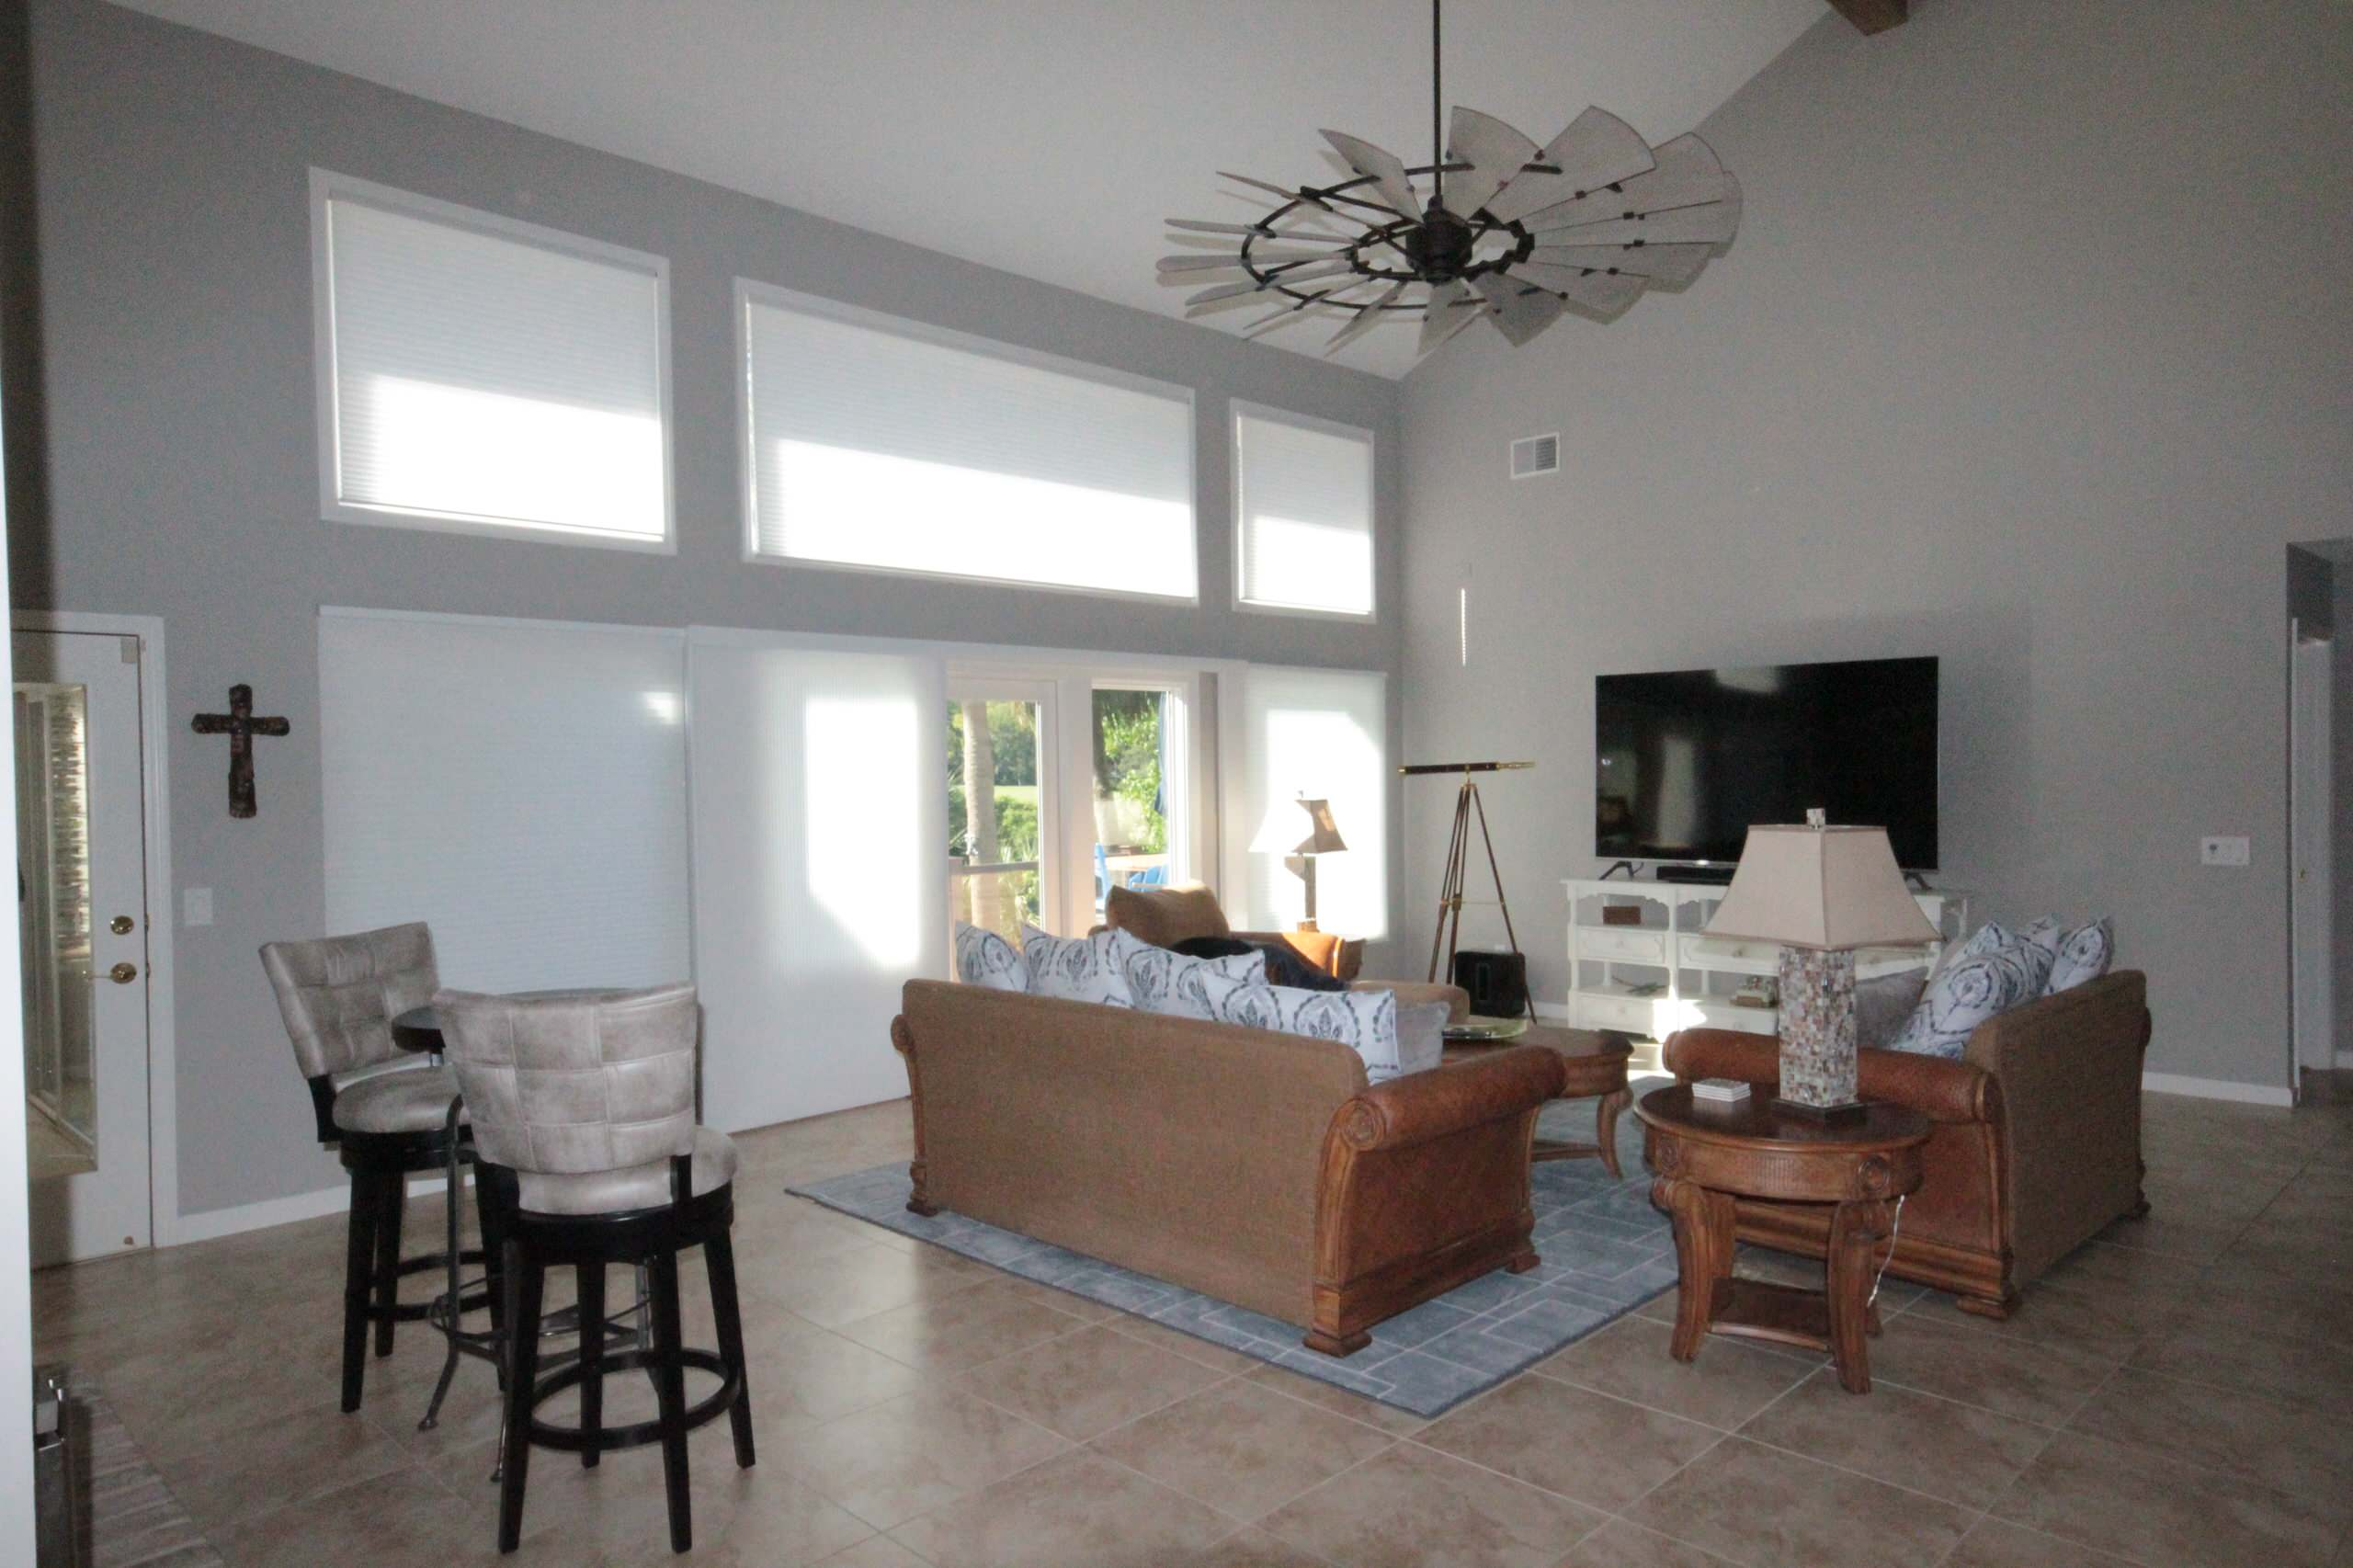 Great Room After Remodel